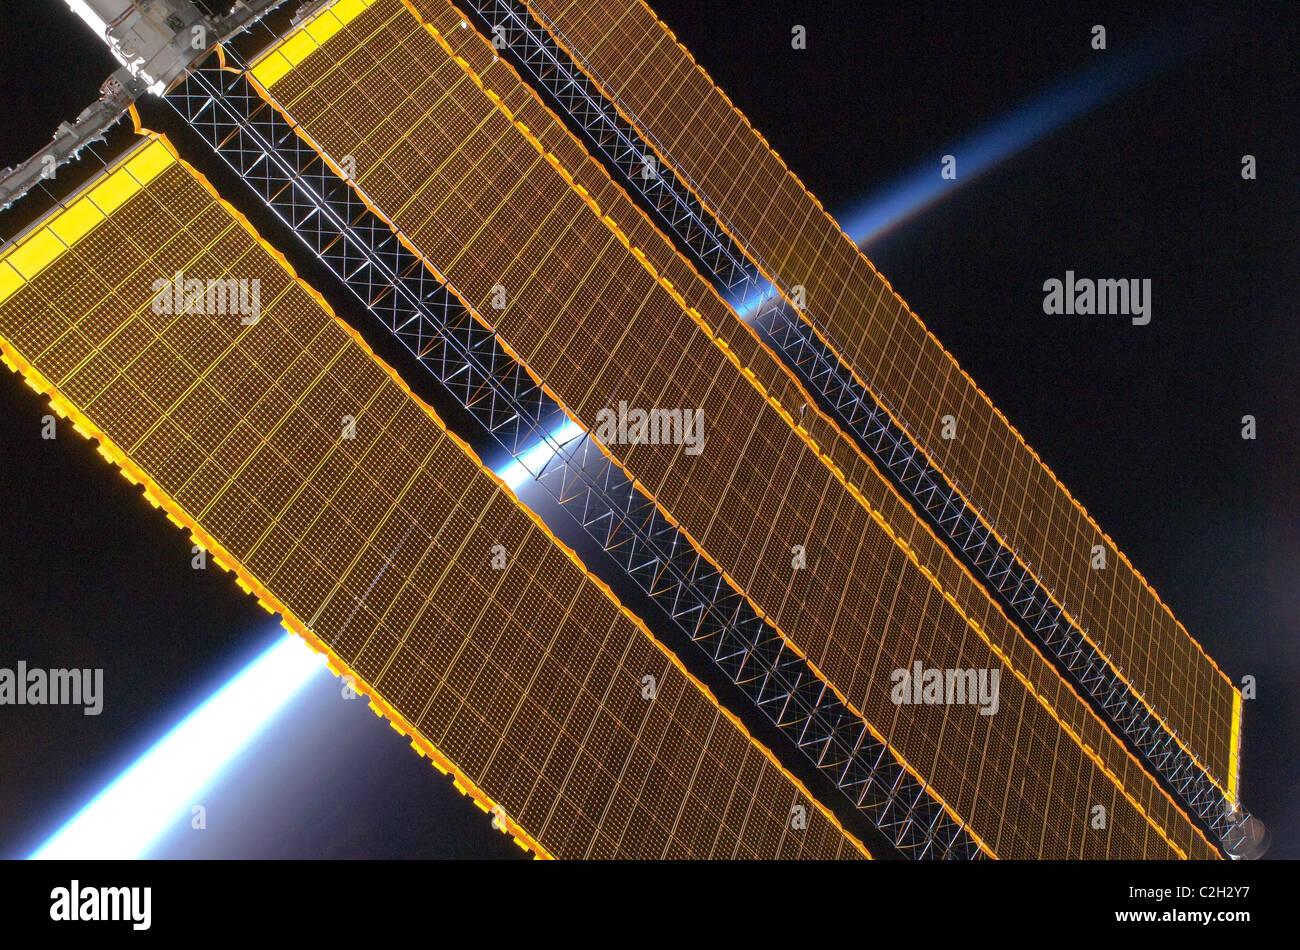 Earth's horizon and the International Space Station's solar array panels. Stock Photo